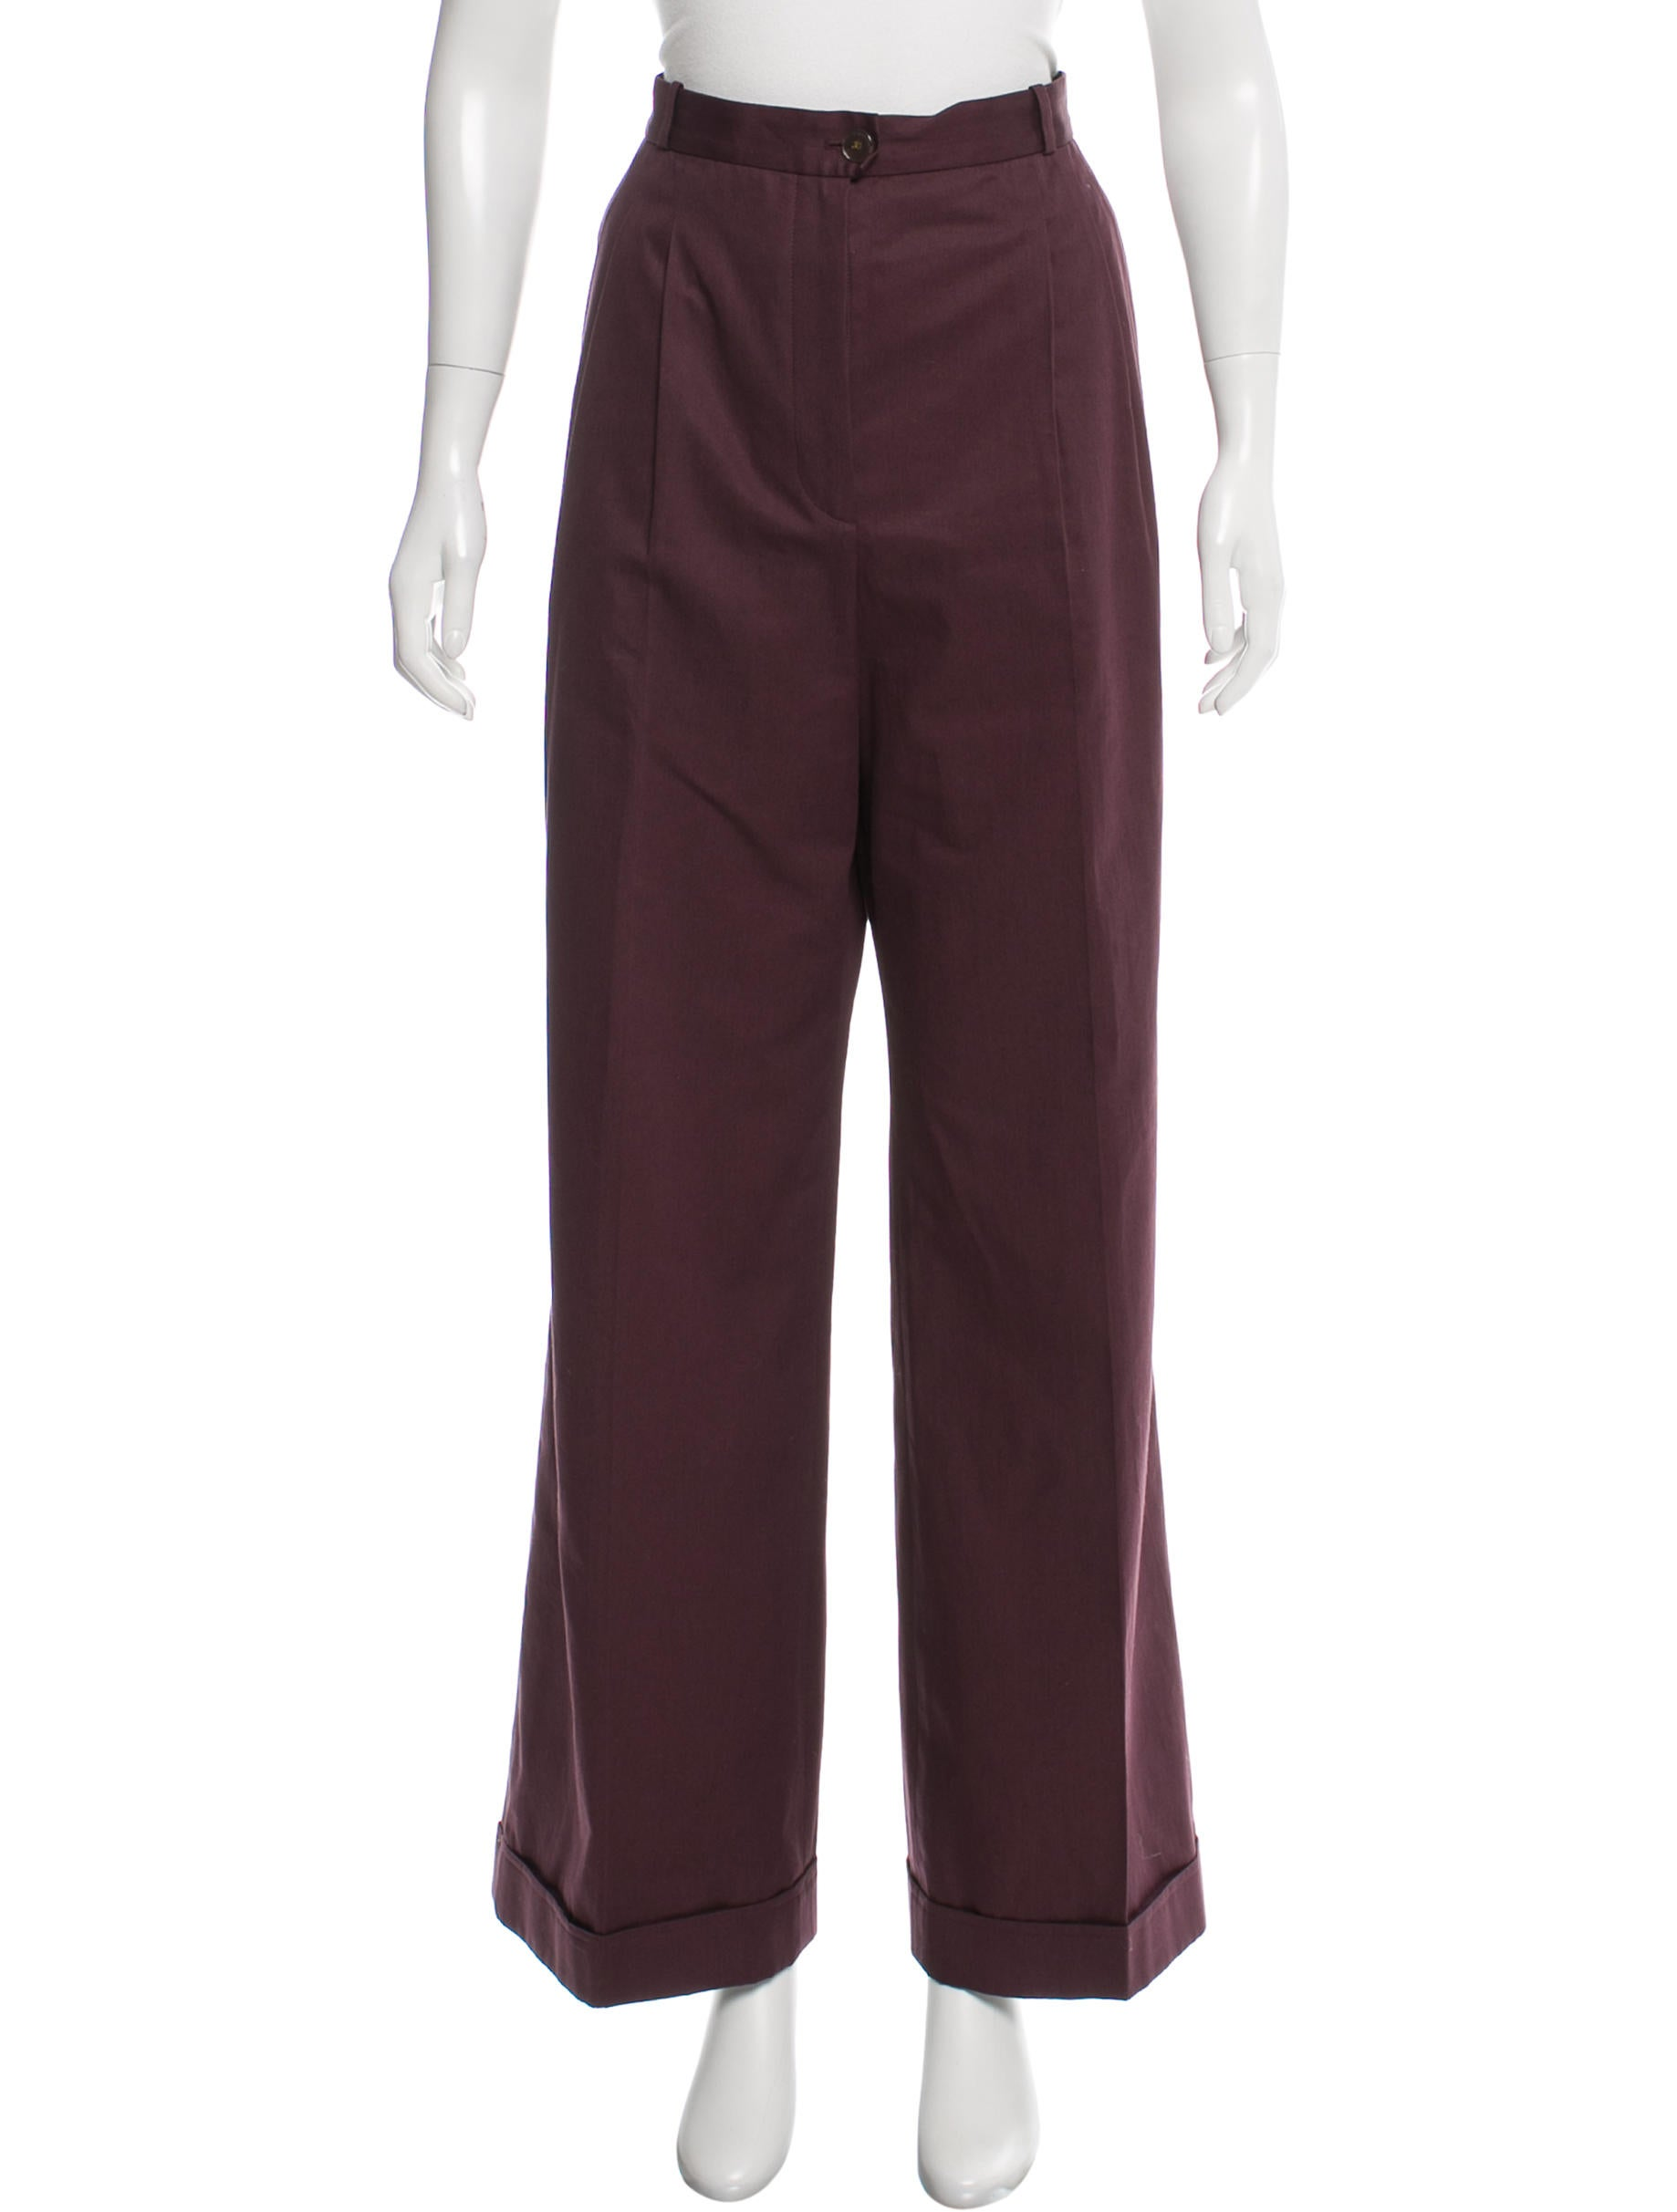 Find wide leg pleated pants at ShopStyle. Shop the latest collection of wide leg pleated pants from the most popular stores - all in one place.